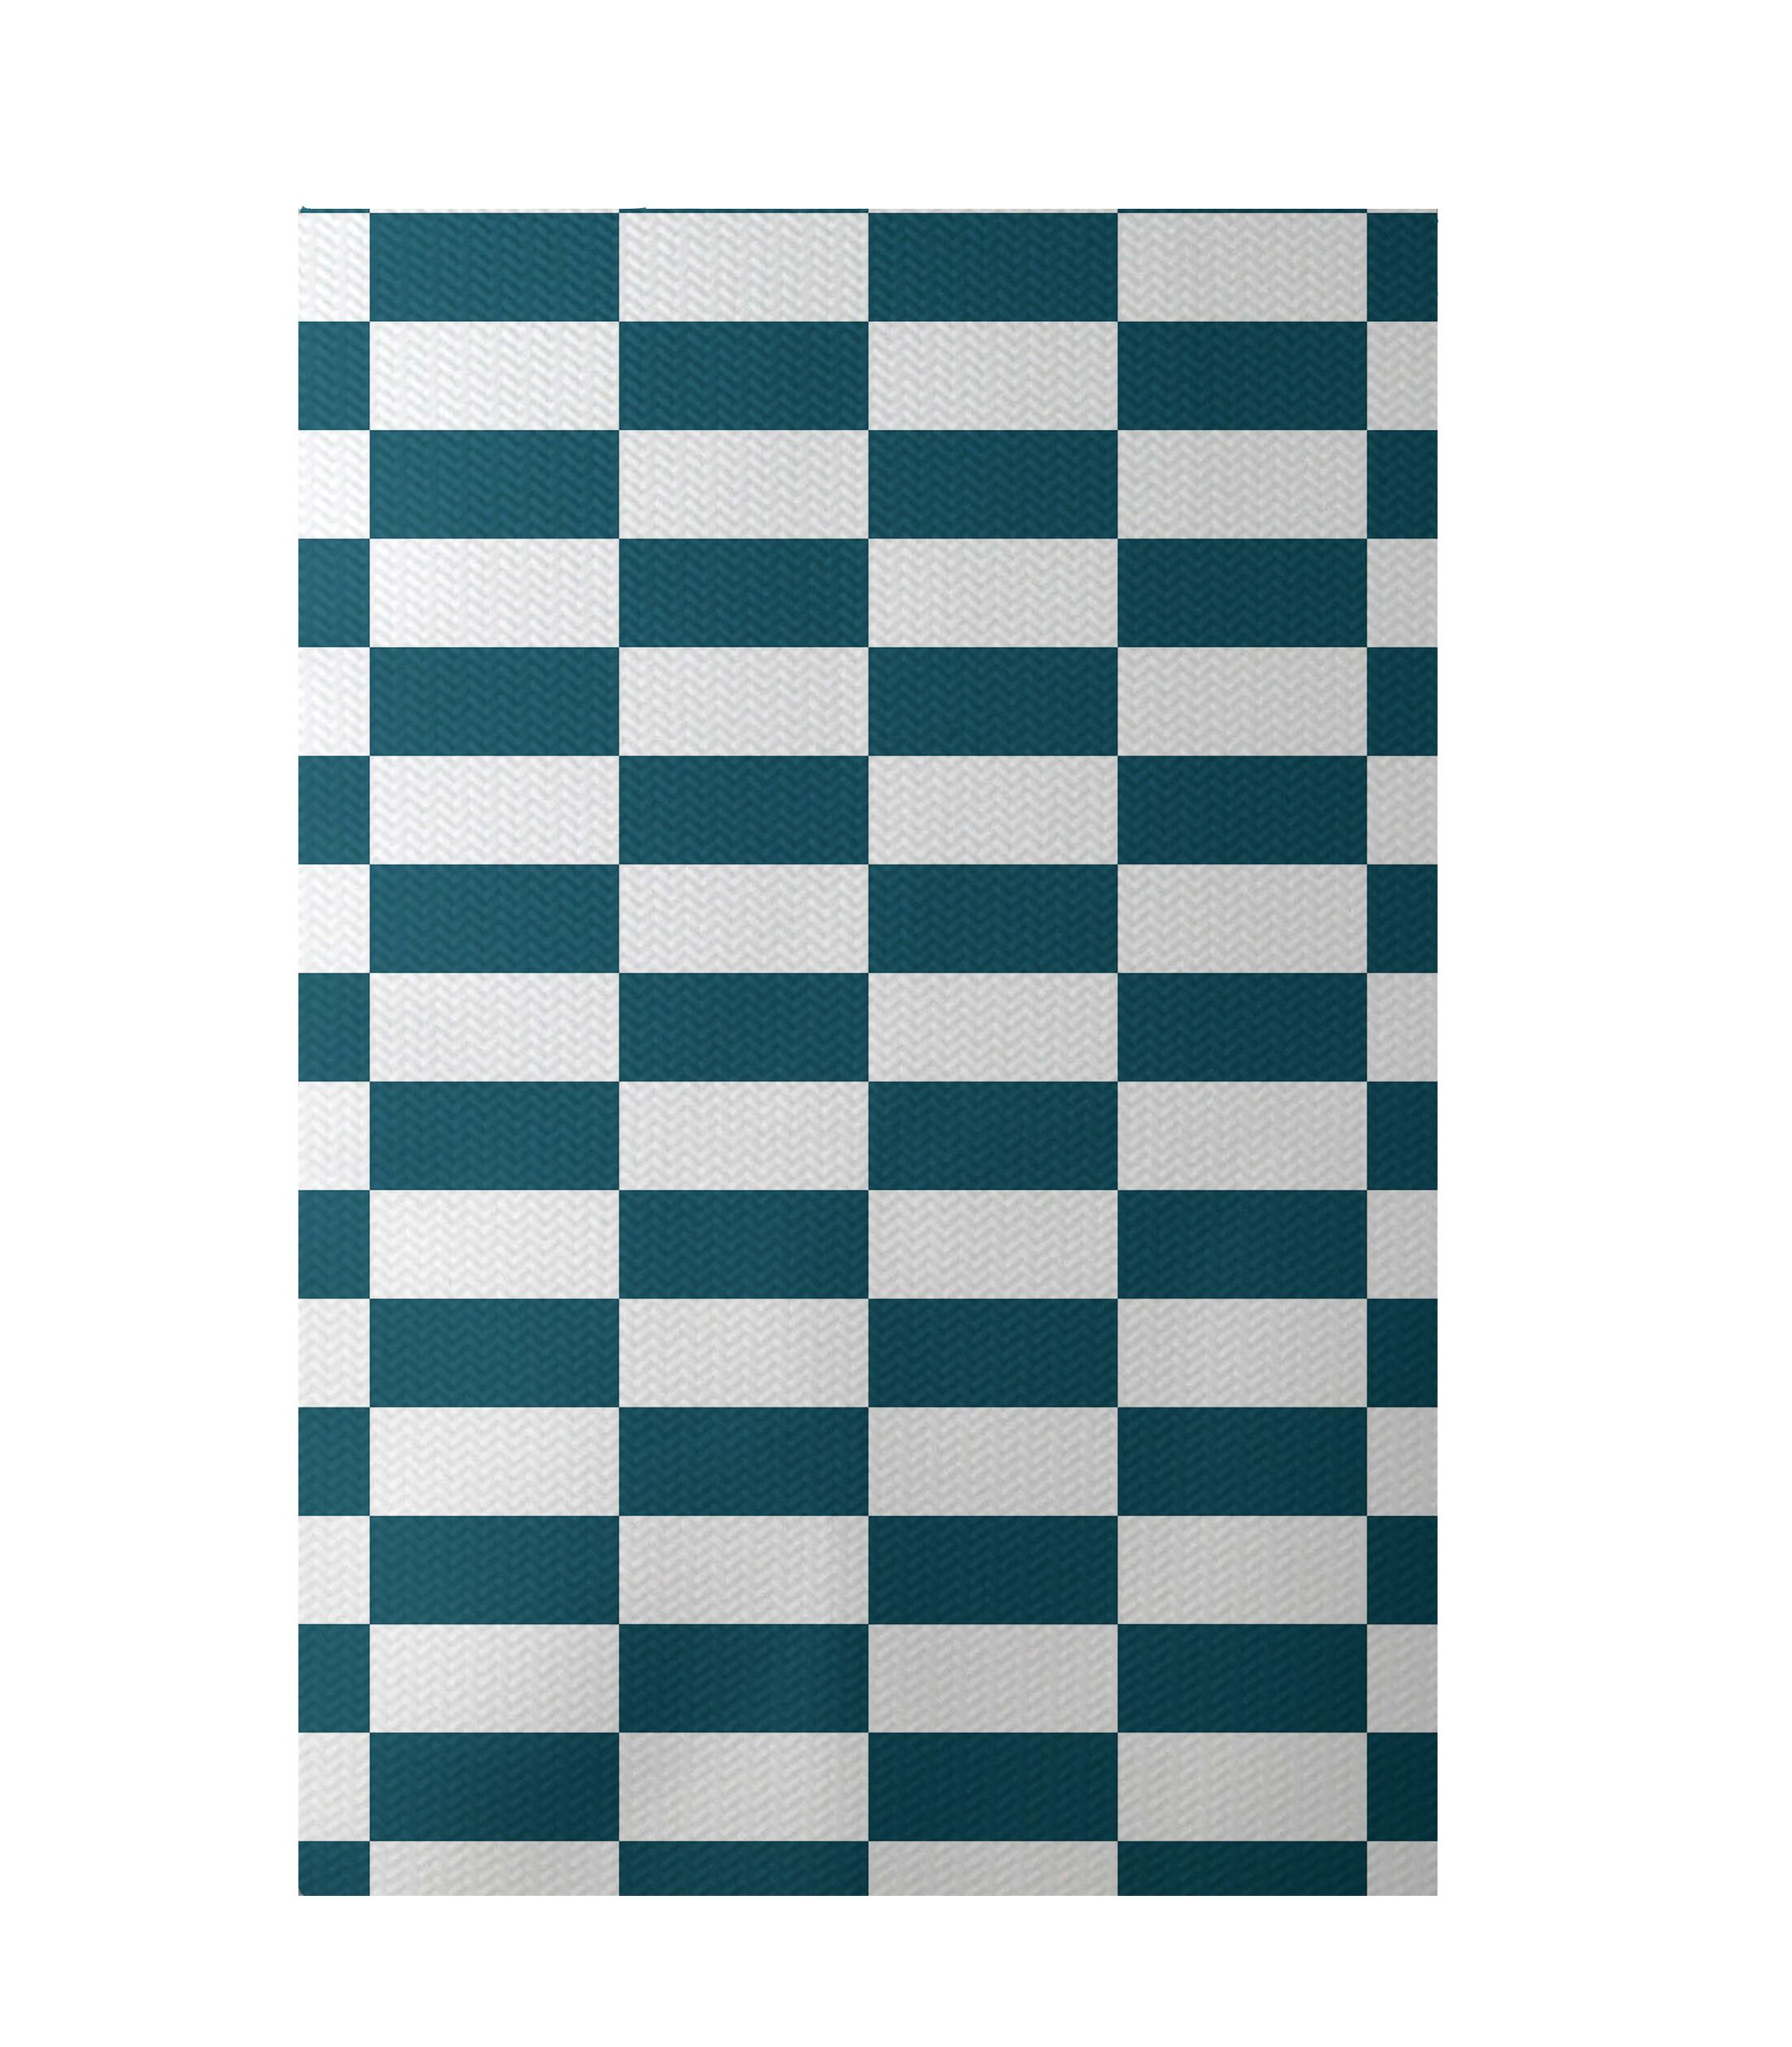 Plaid Hand-Woven Teal Indoor/Outdoor Area Rug Rug Size: Rectangle 4' x 6'